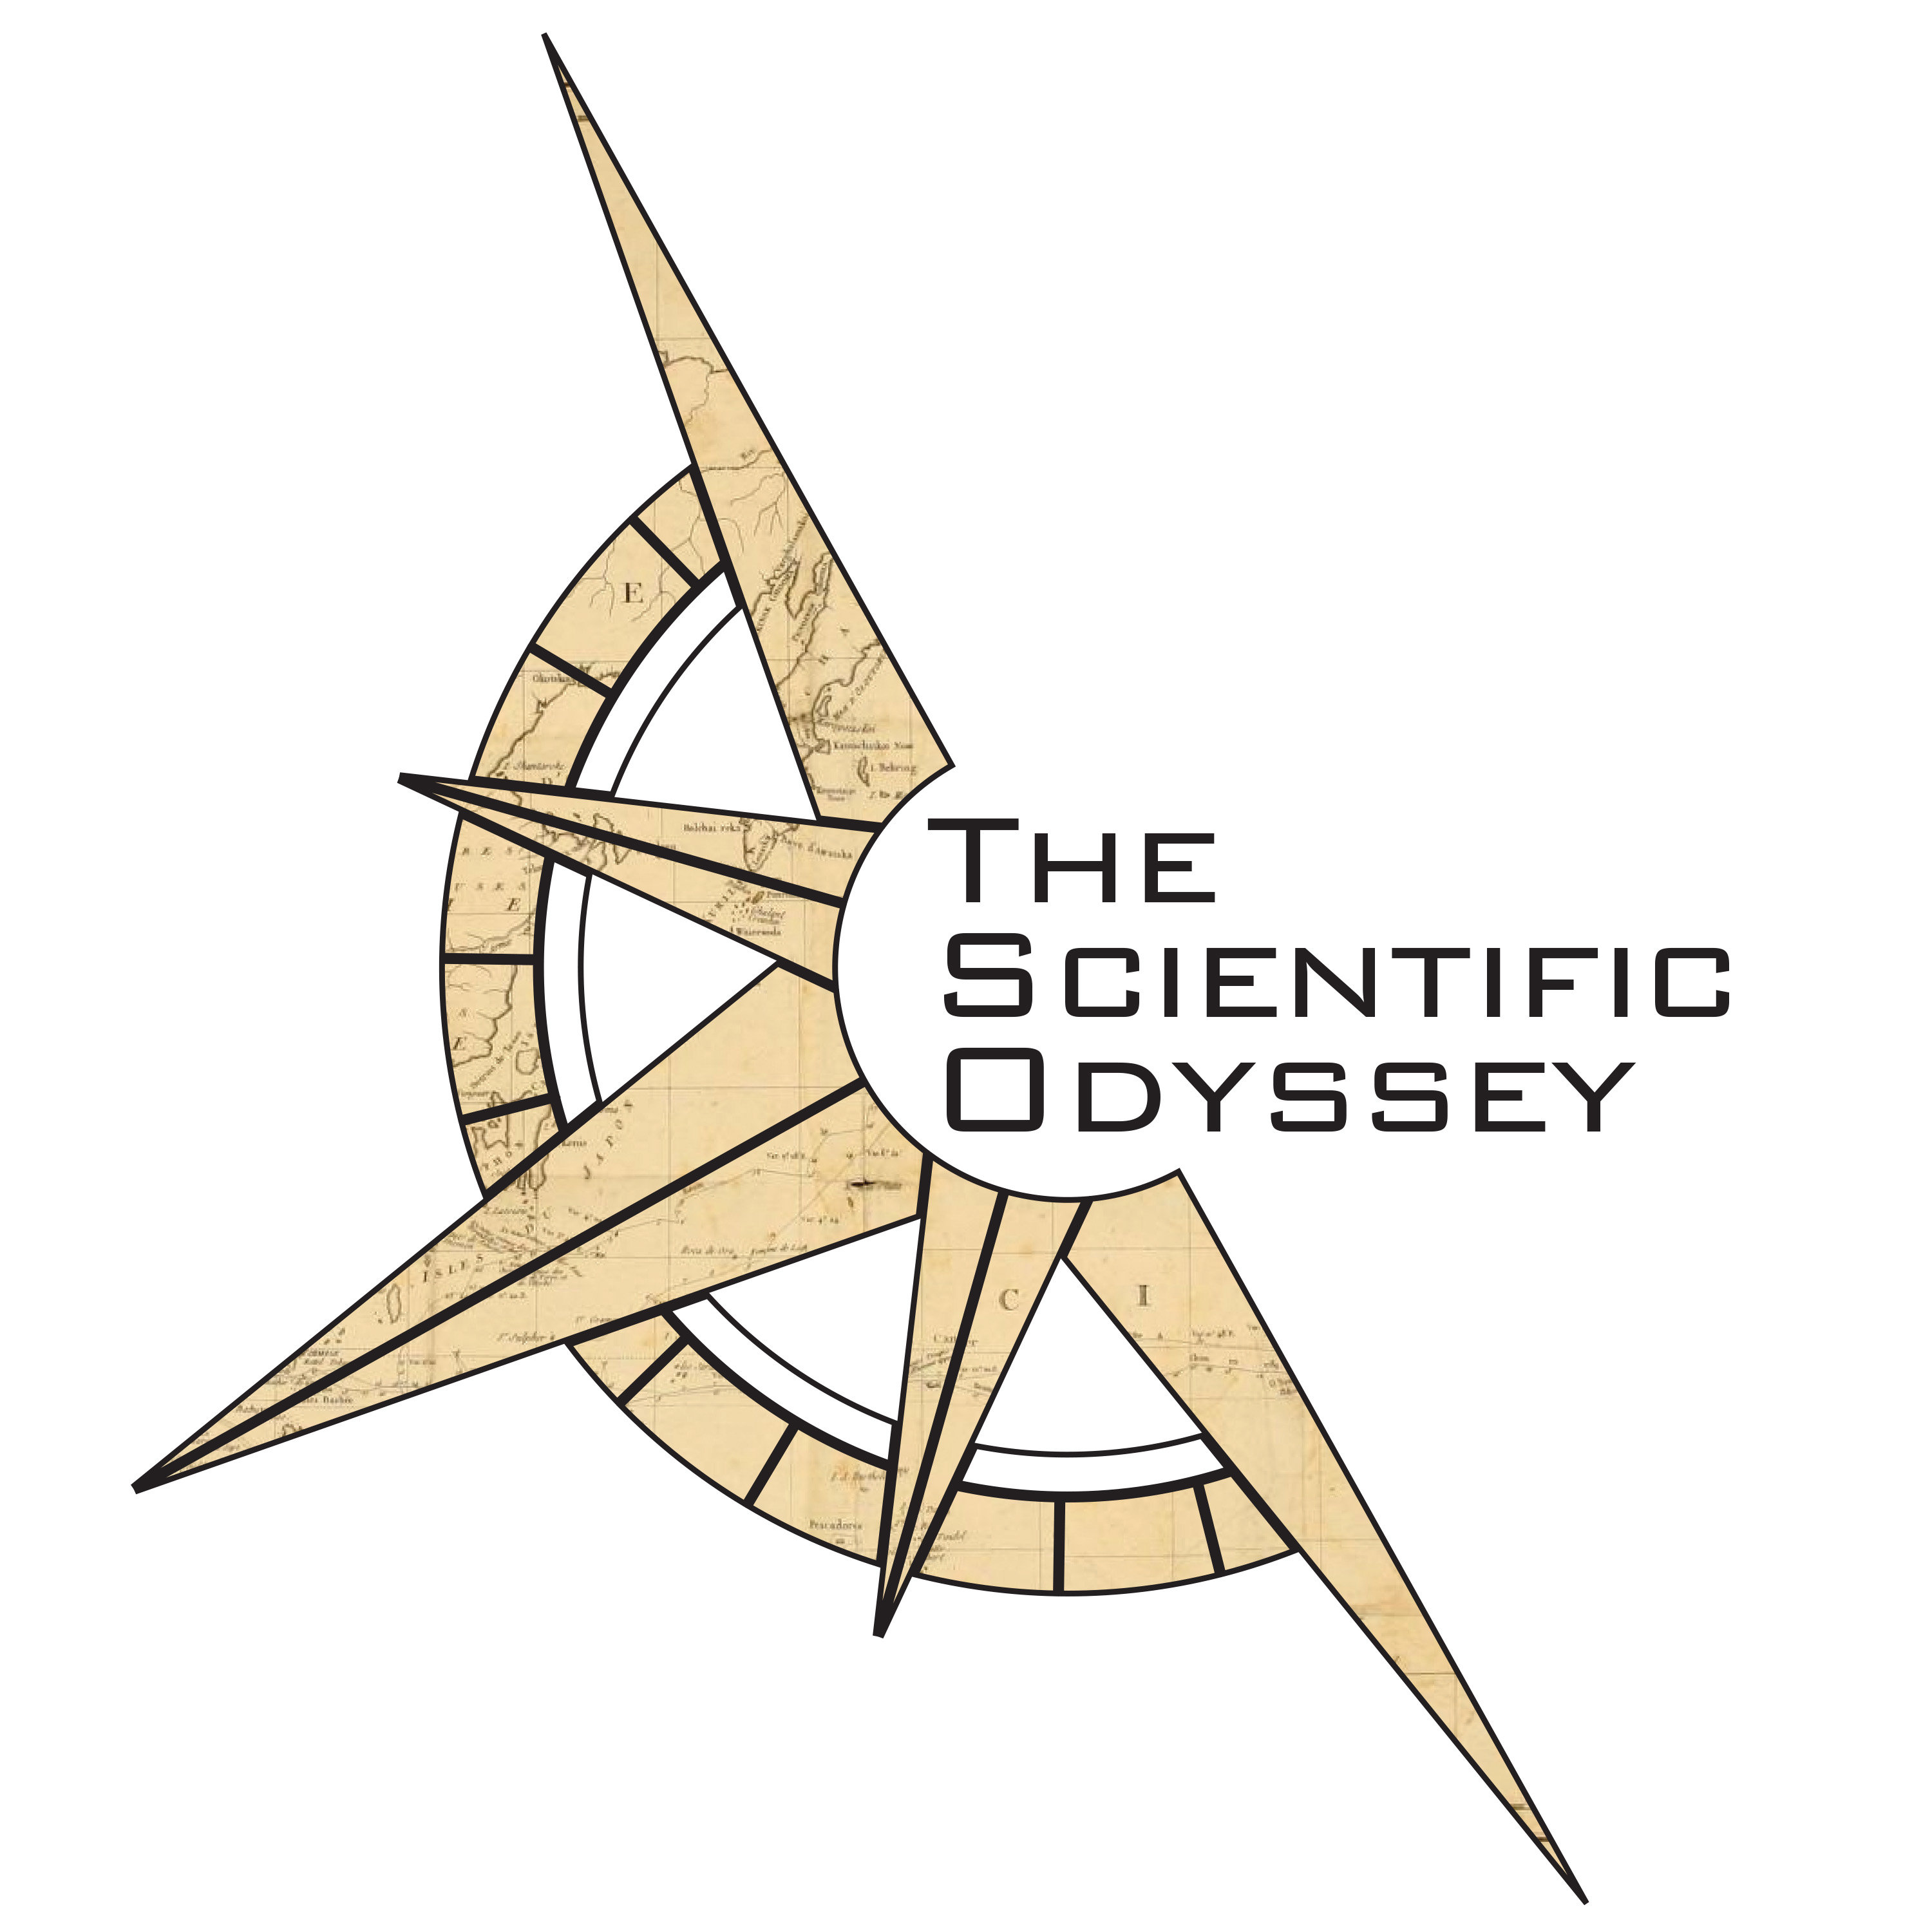 The Scientific Odyssey image